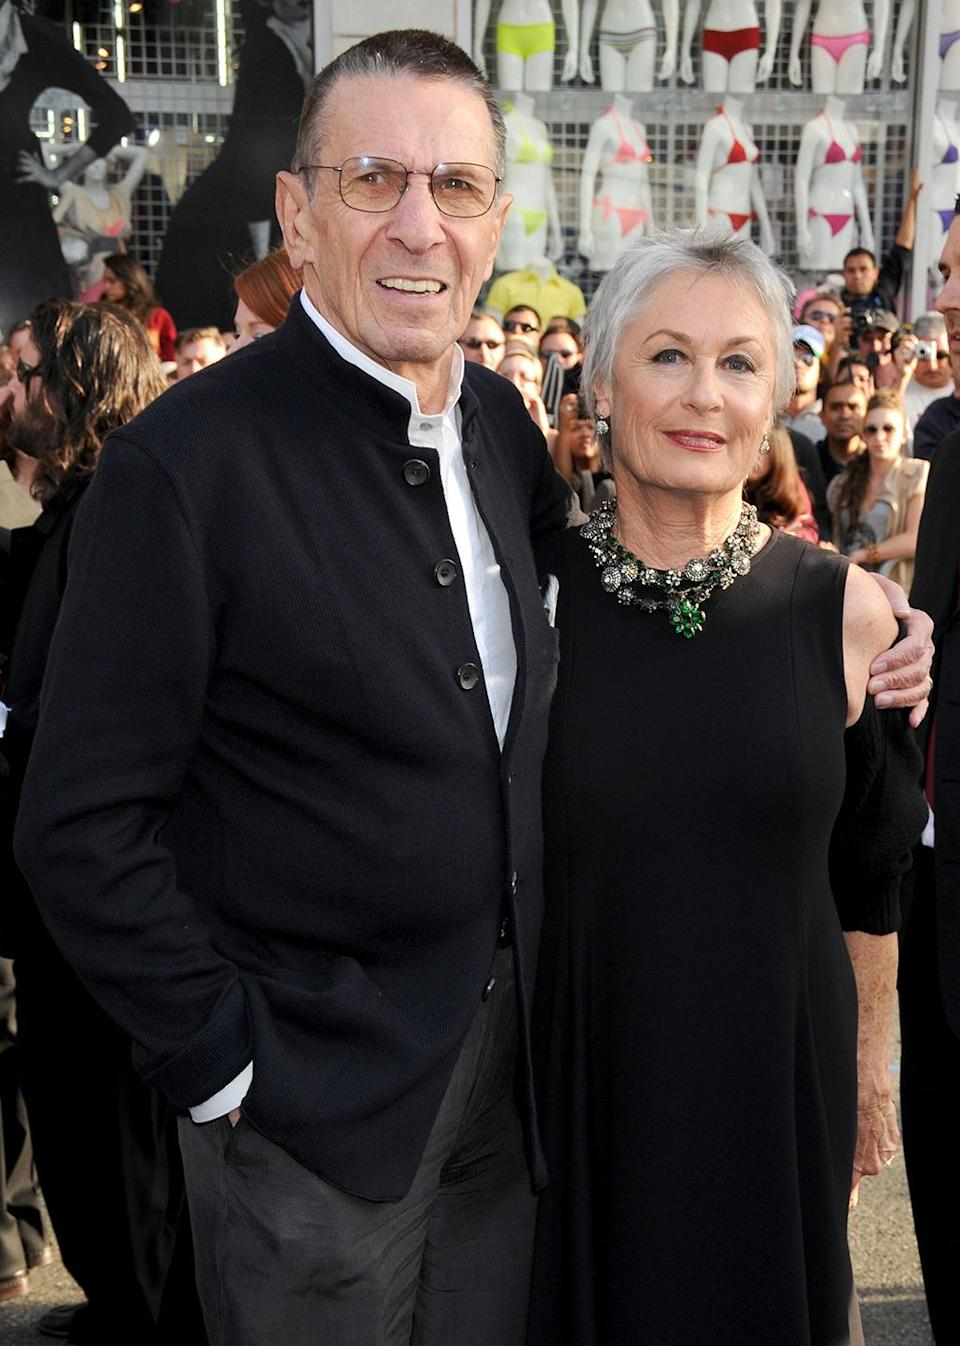 <p>Leonard Nimoy (Spock Prime) and wife Susan Bay. Nimoy returned as an older version of Spock in the rebooted <i>Star Trek</i>. <i>(Photo: Gregg DeGuire/FilmMagic)</i></p>